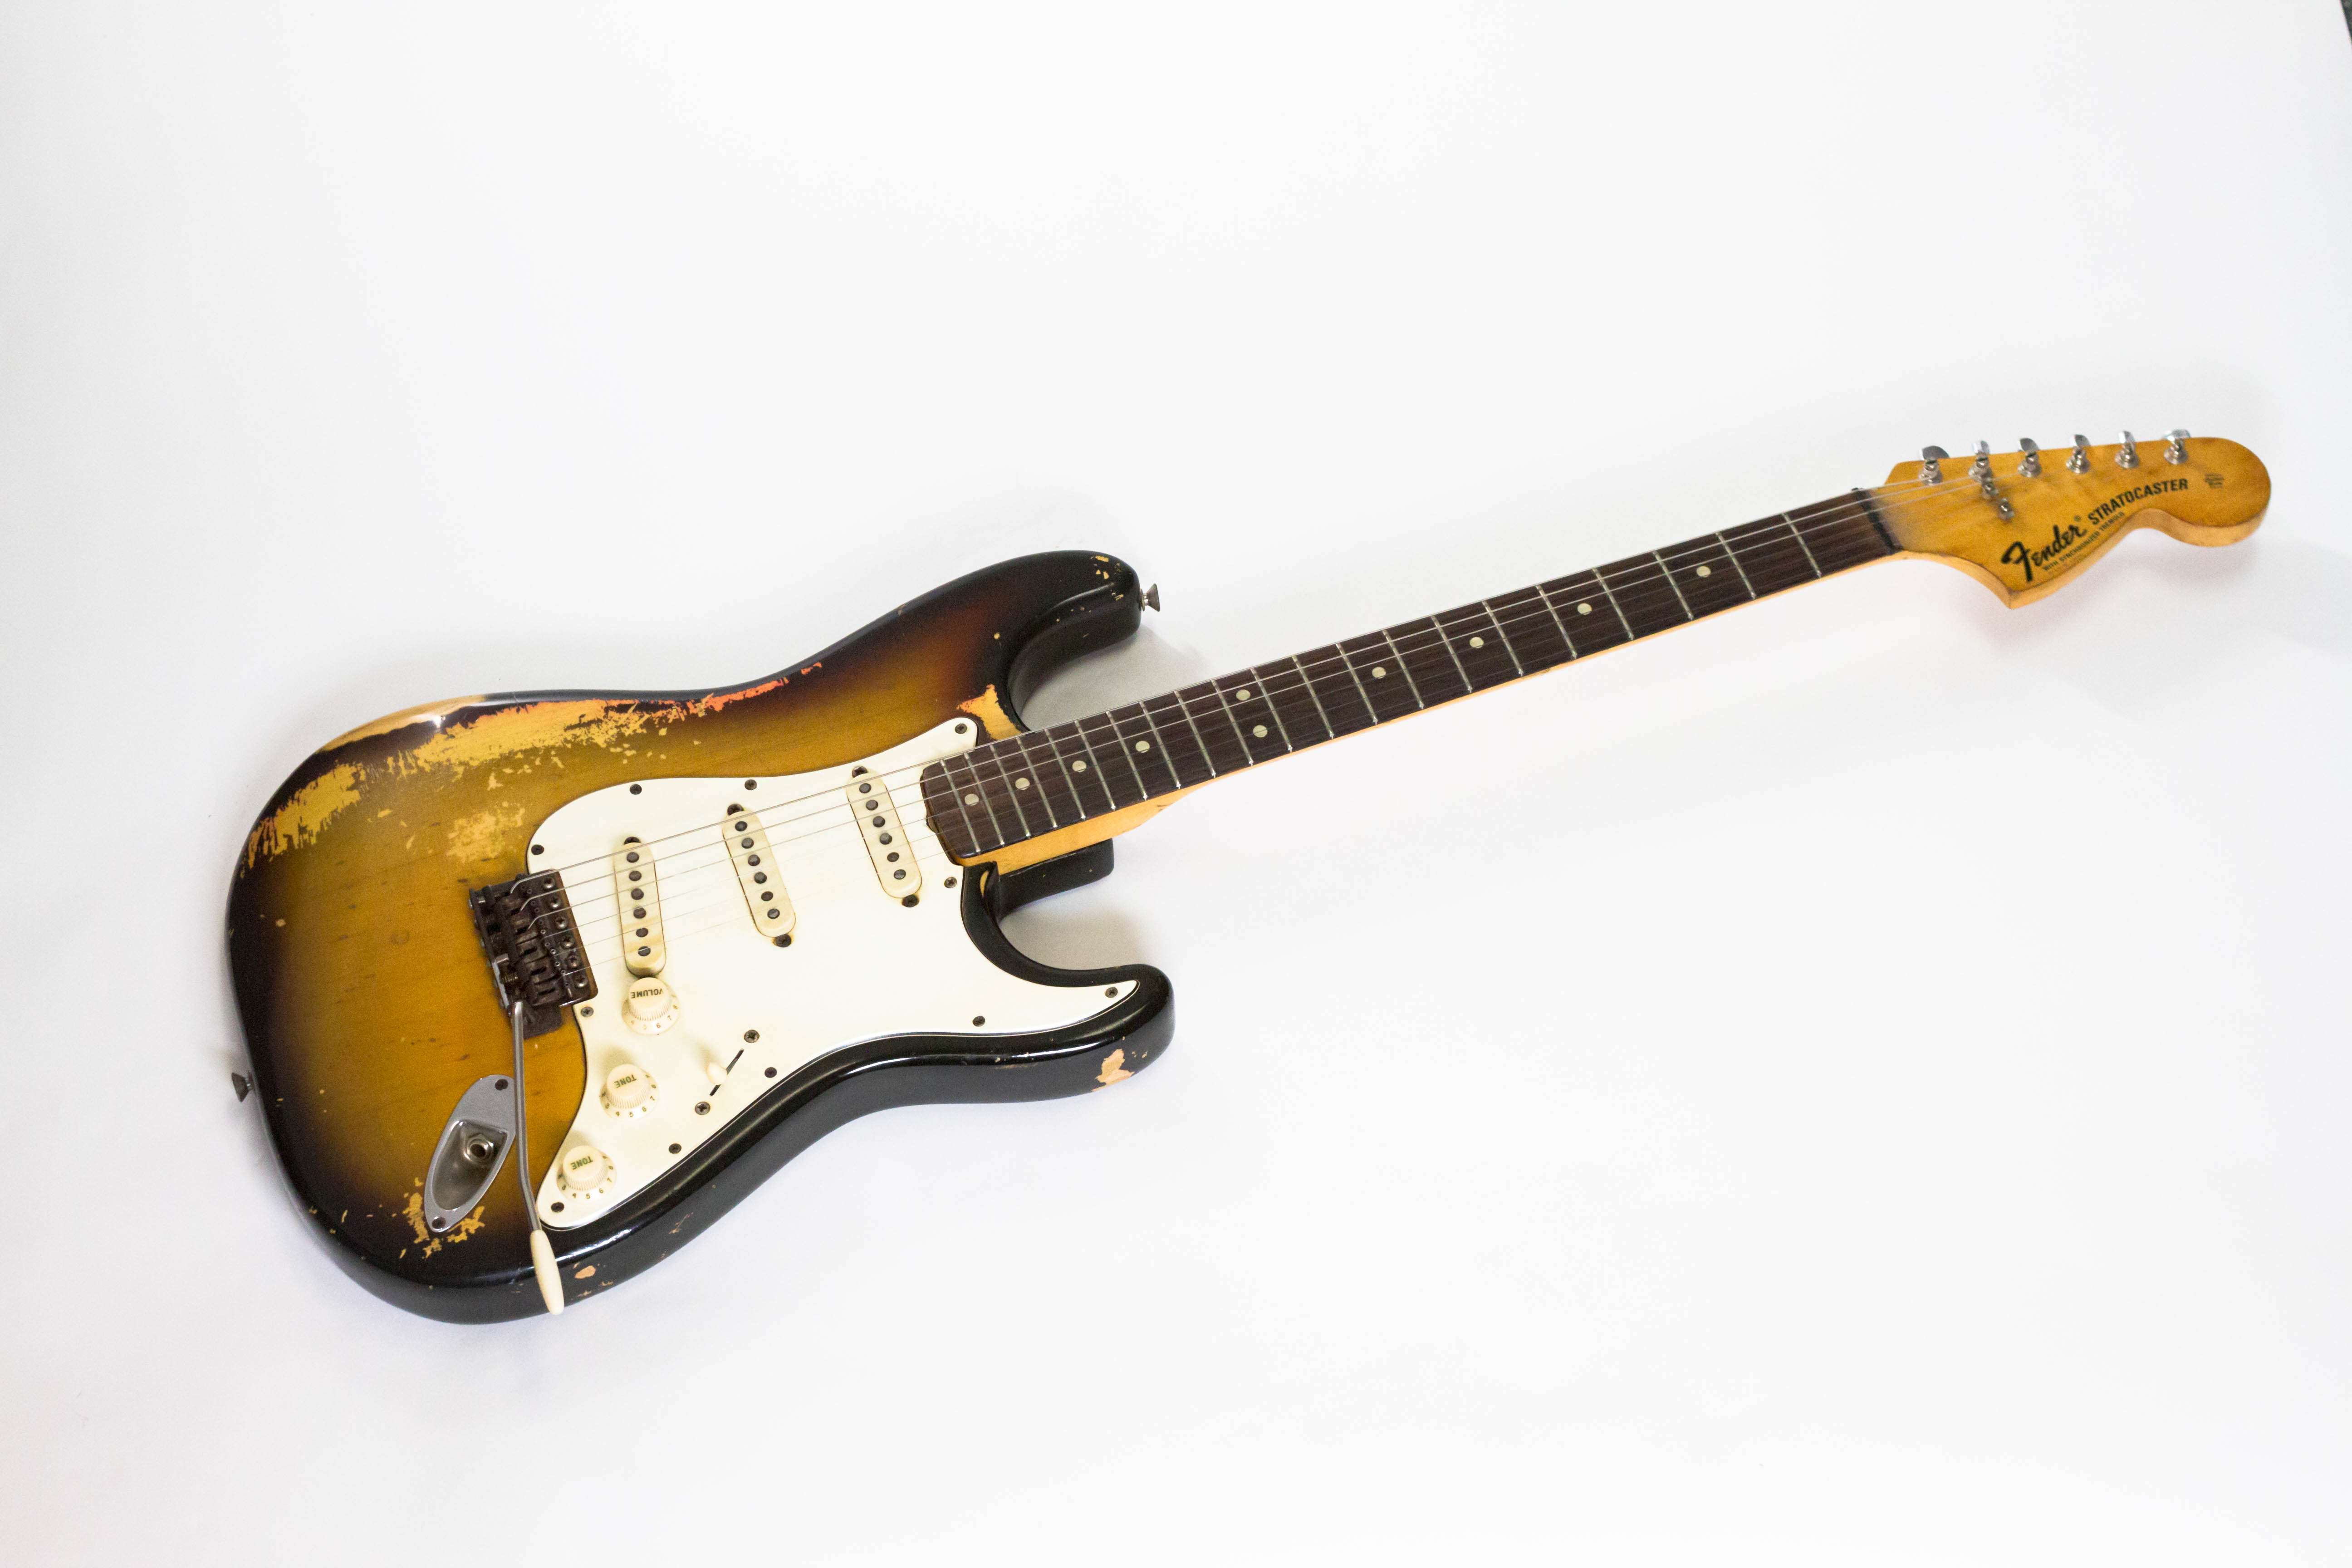 1969 fender stratocaster south austin music new used and vintage instruments acoustic and. Black Bedroom Furniture Sets. Home Design Ideas